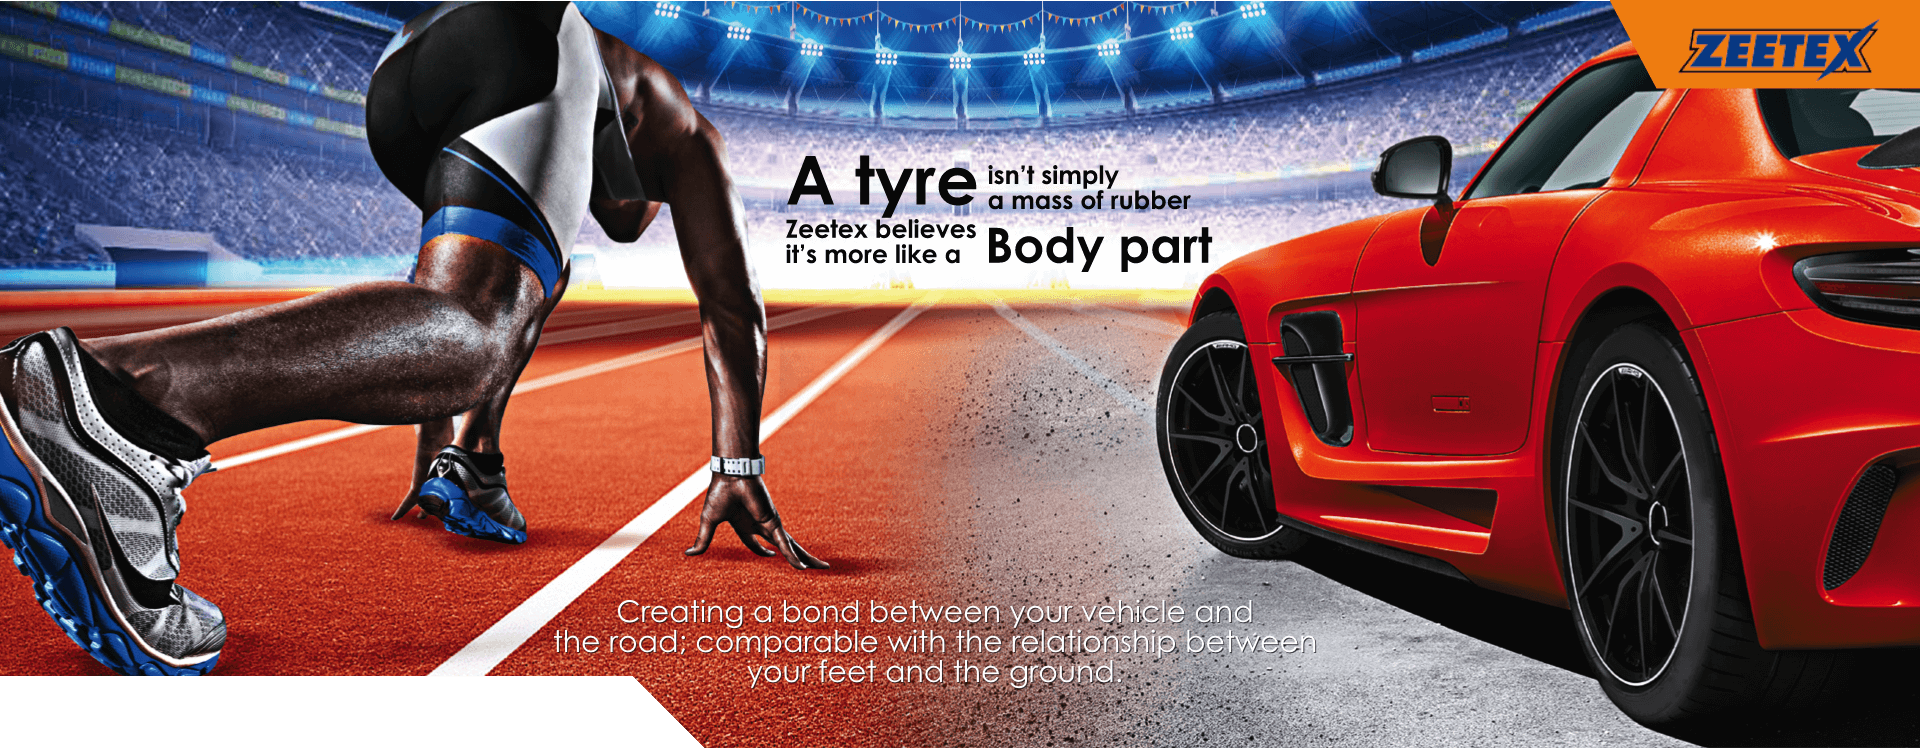 PIRELLI ULTRA HIGH-PERFORMANCE TYRES